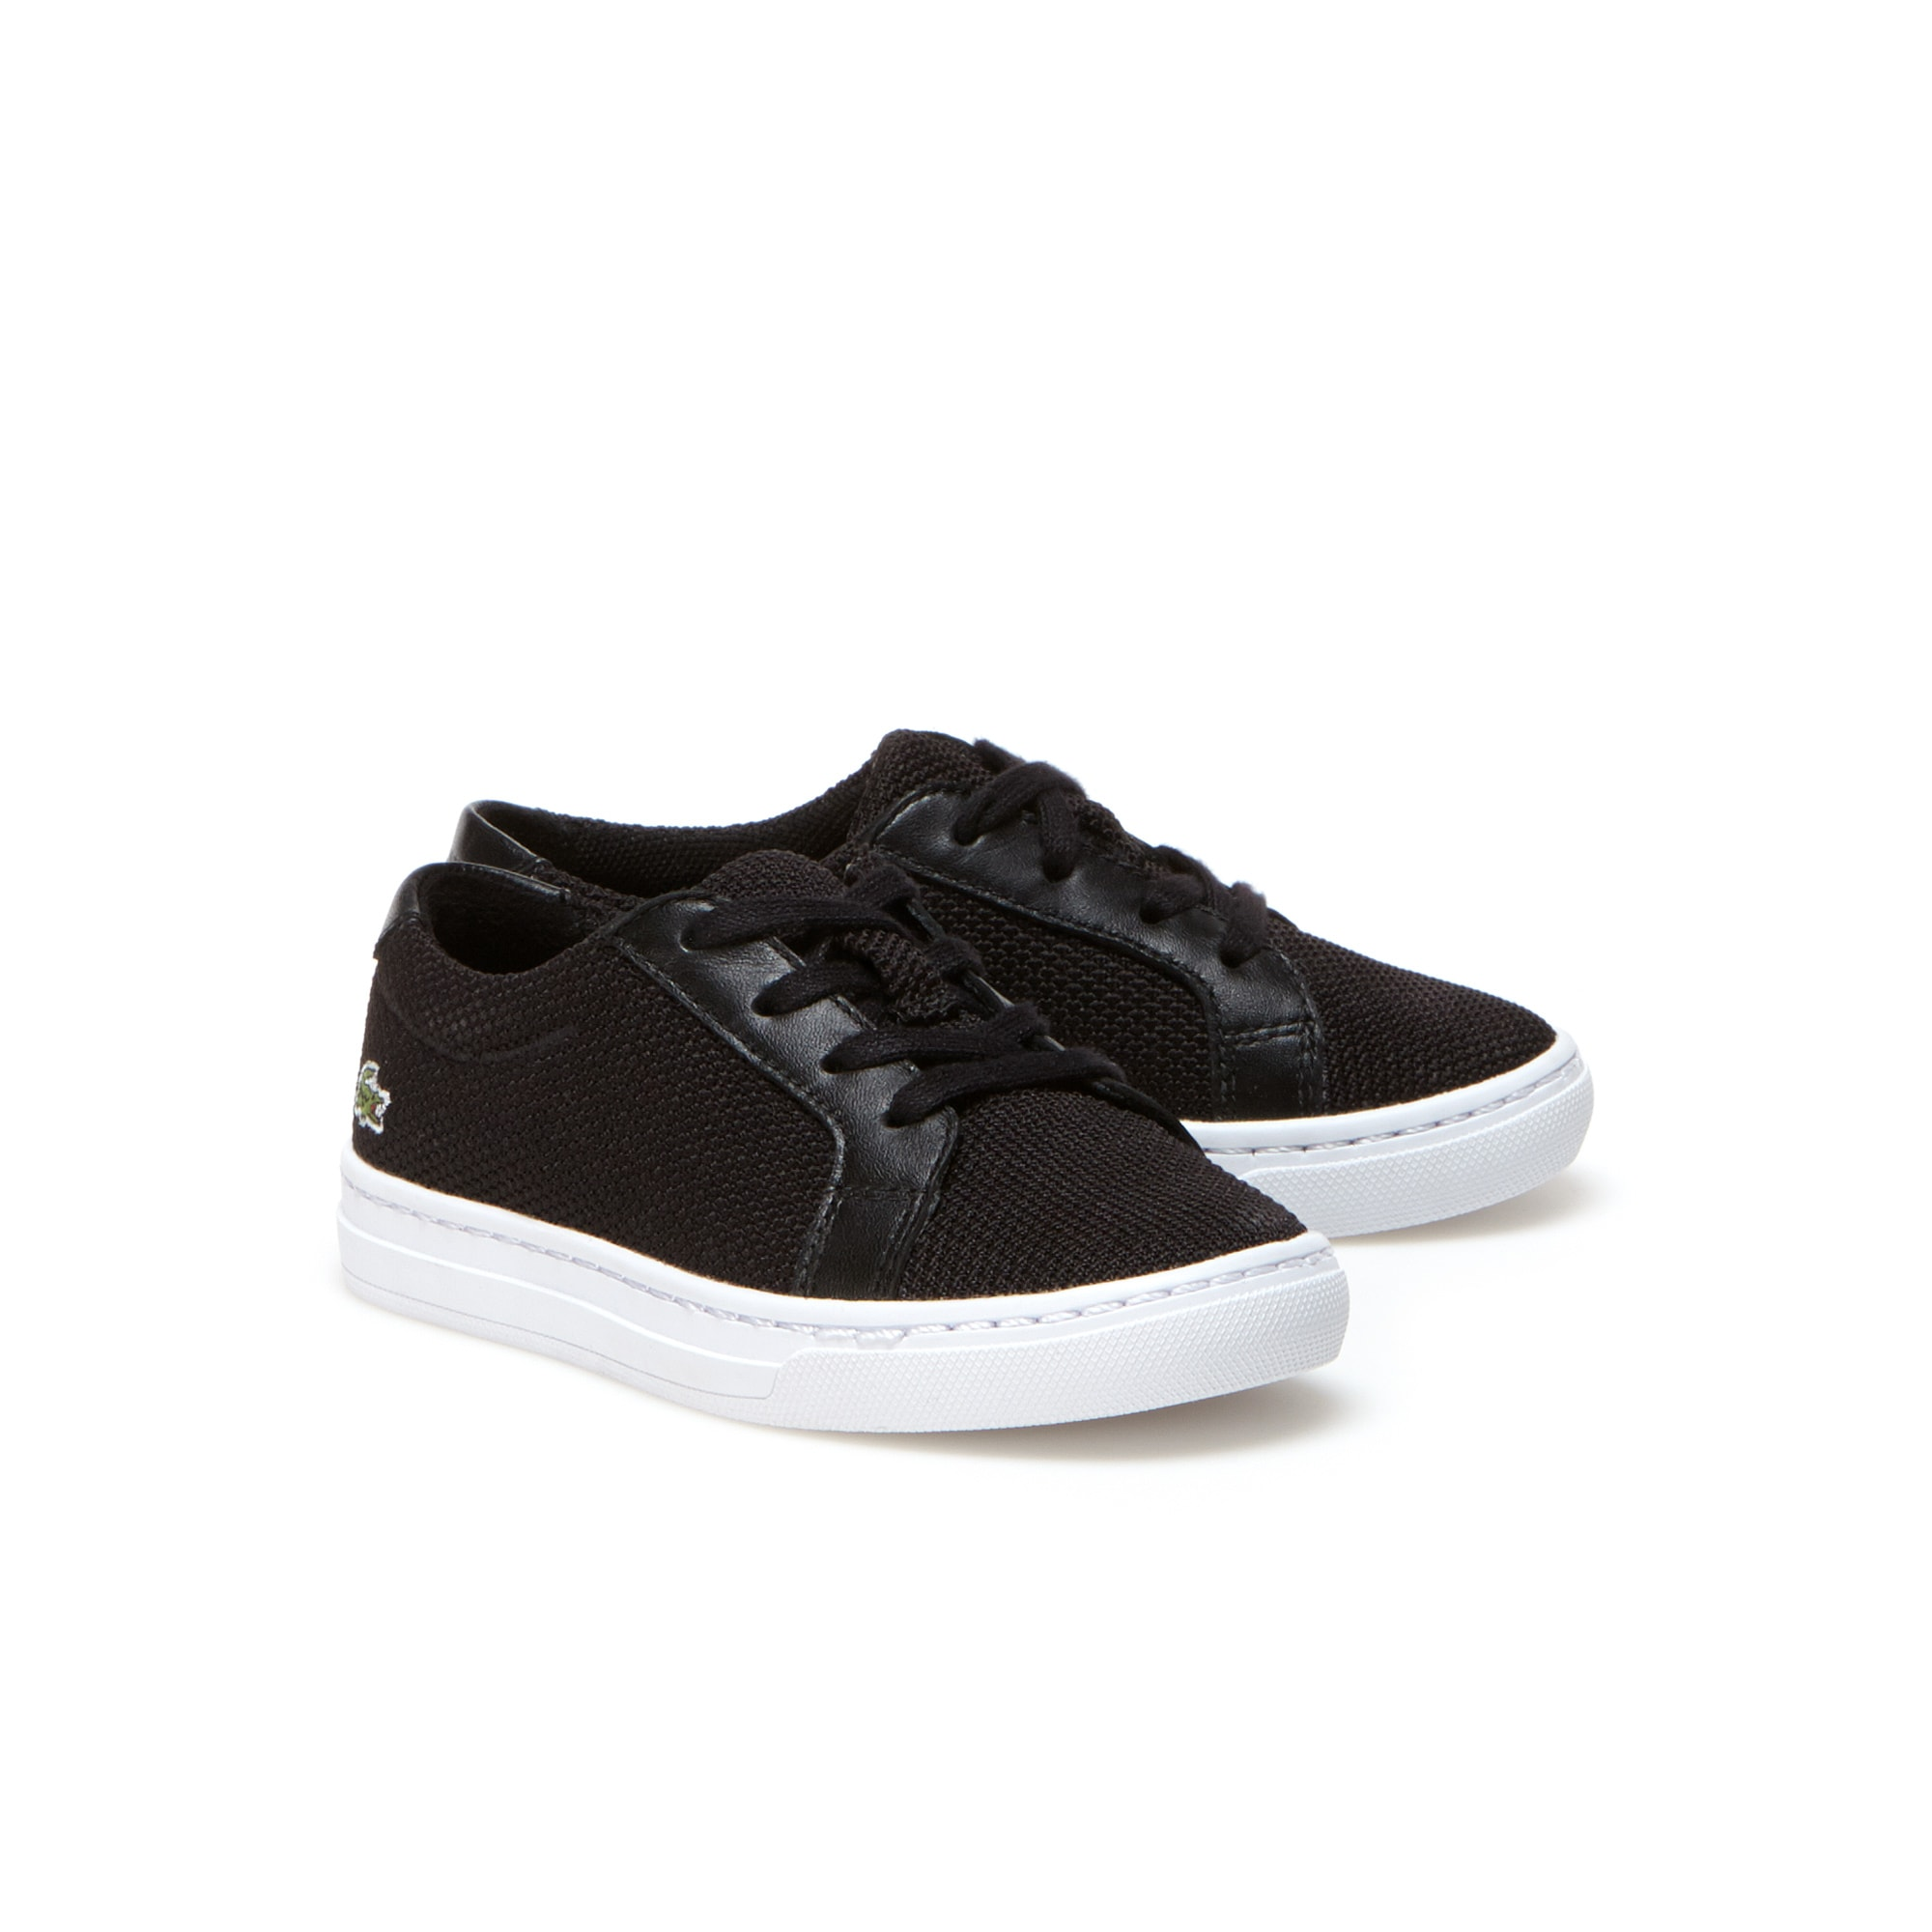 Infants' L.12.12 BL Textile and Leather Trainers